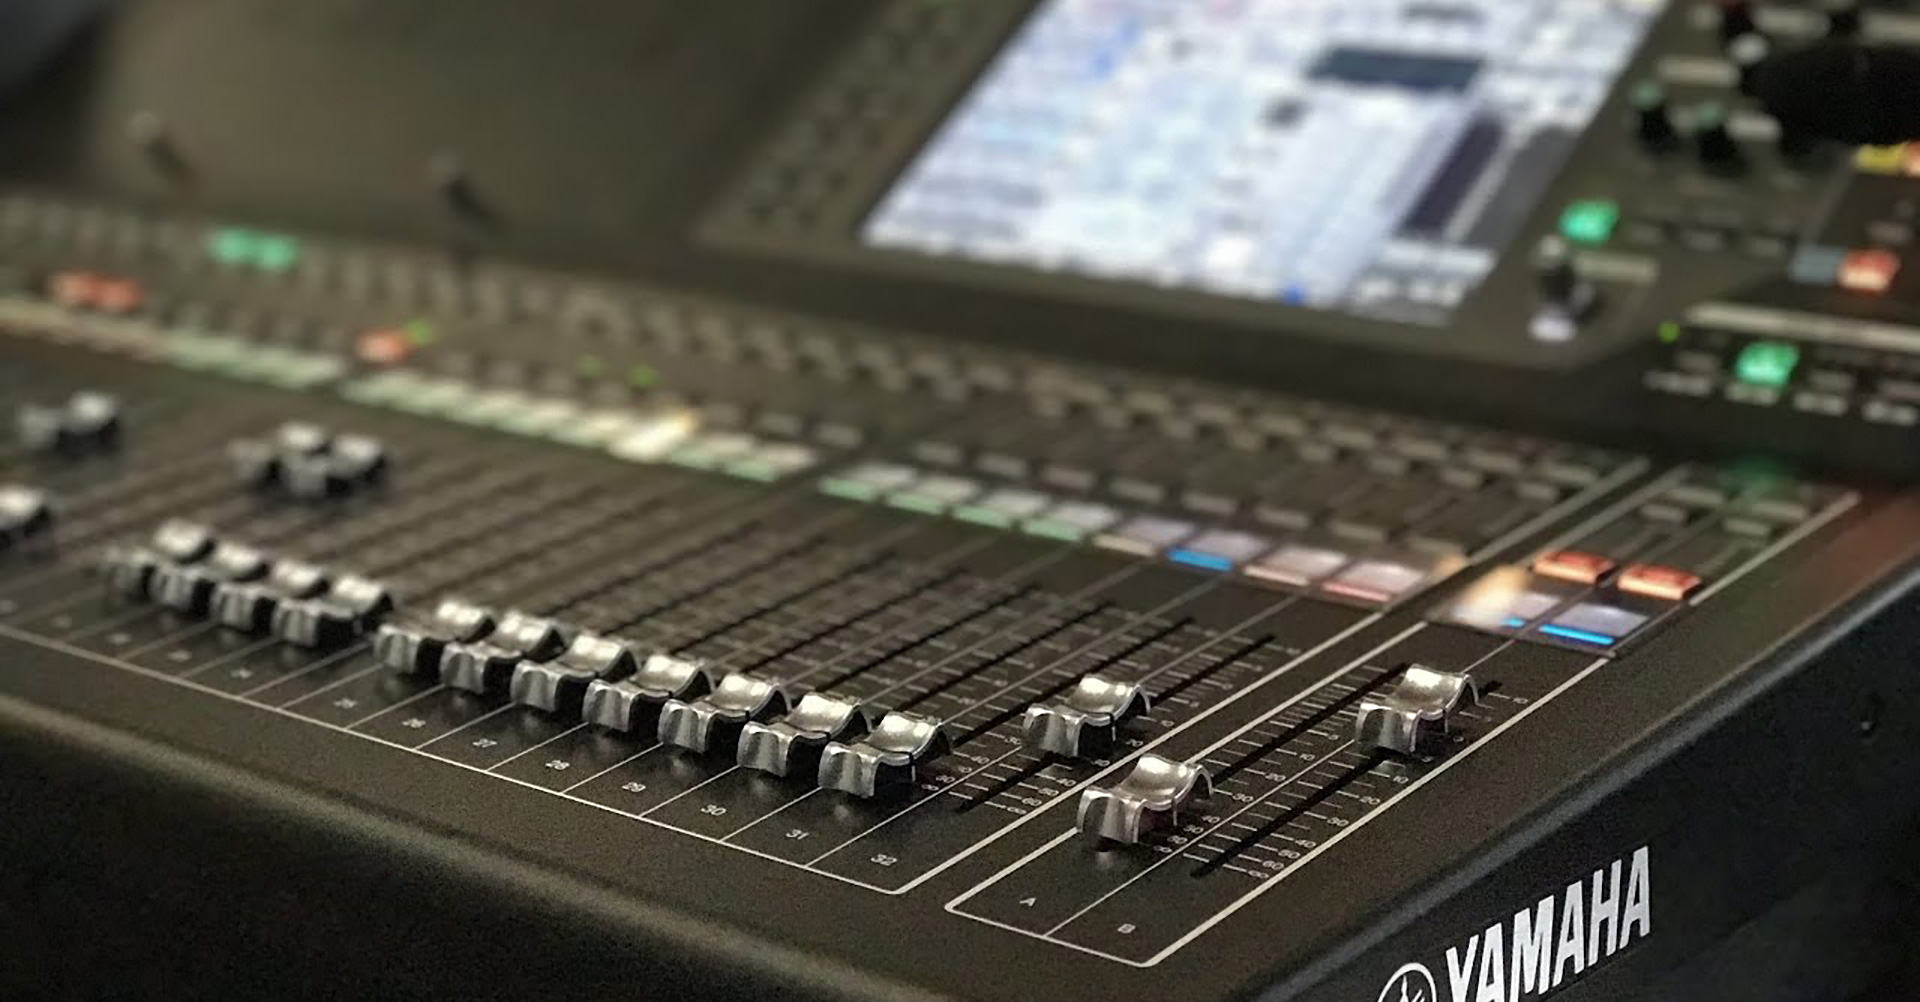 Mixer - Does It Help In Improving The Sound Quality